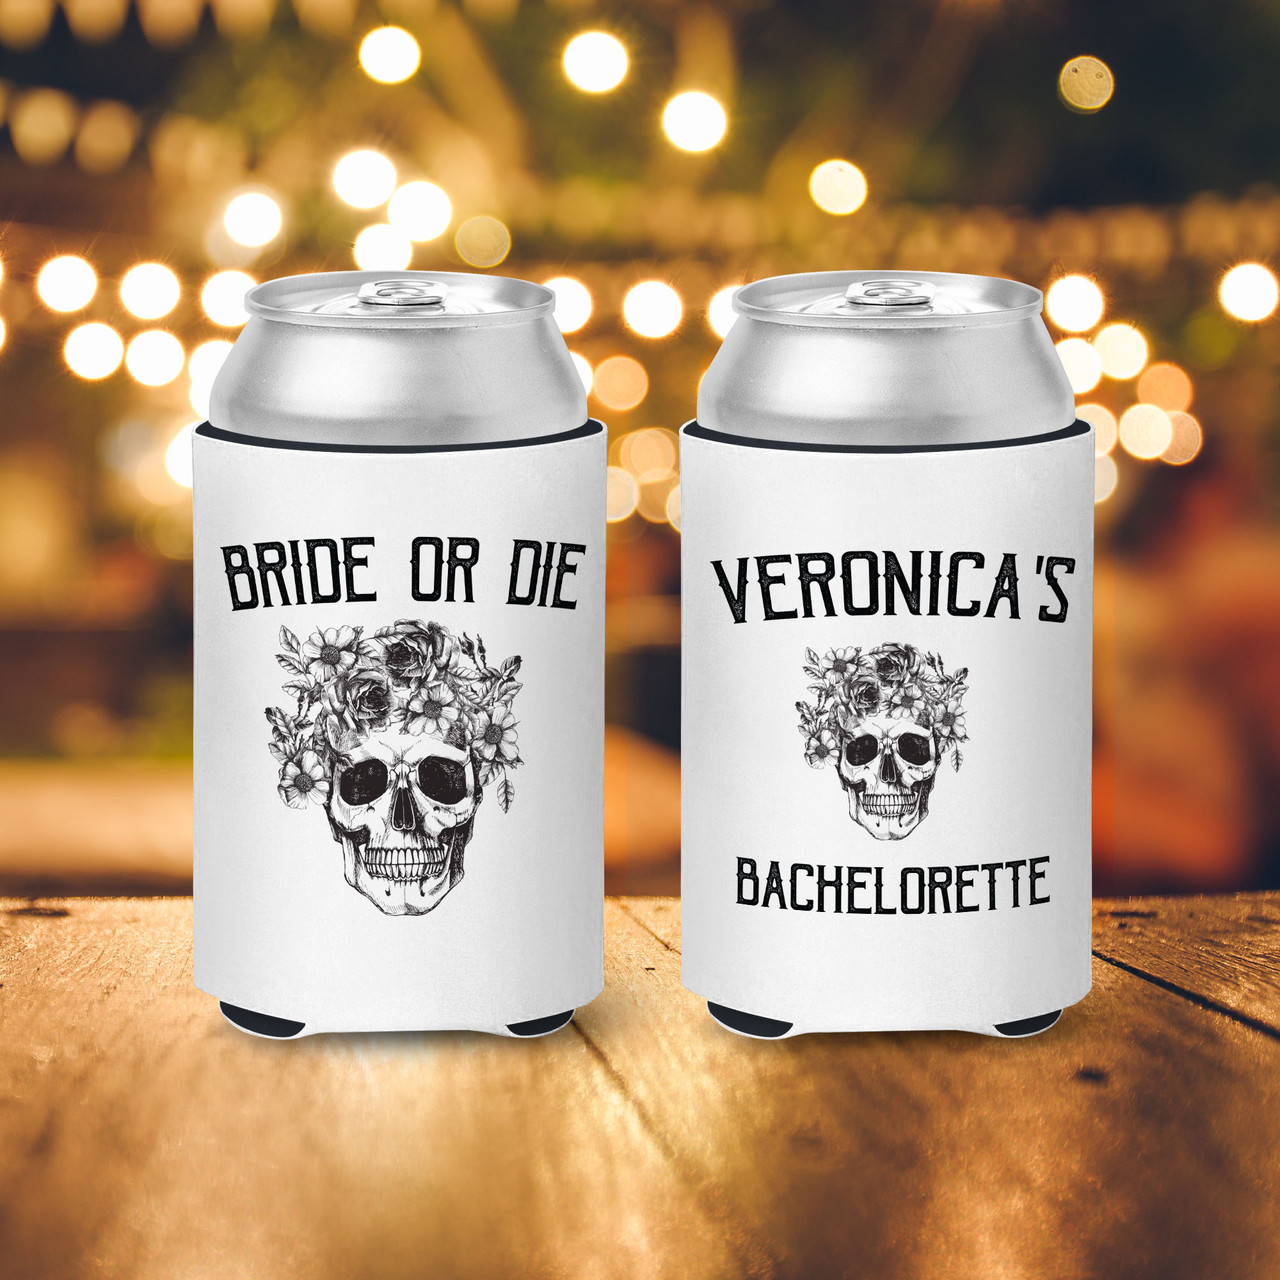 Bachelorette party can coolies bride and guests bride or die till death do we party beverage insulators slim or regular can size mcc-110